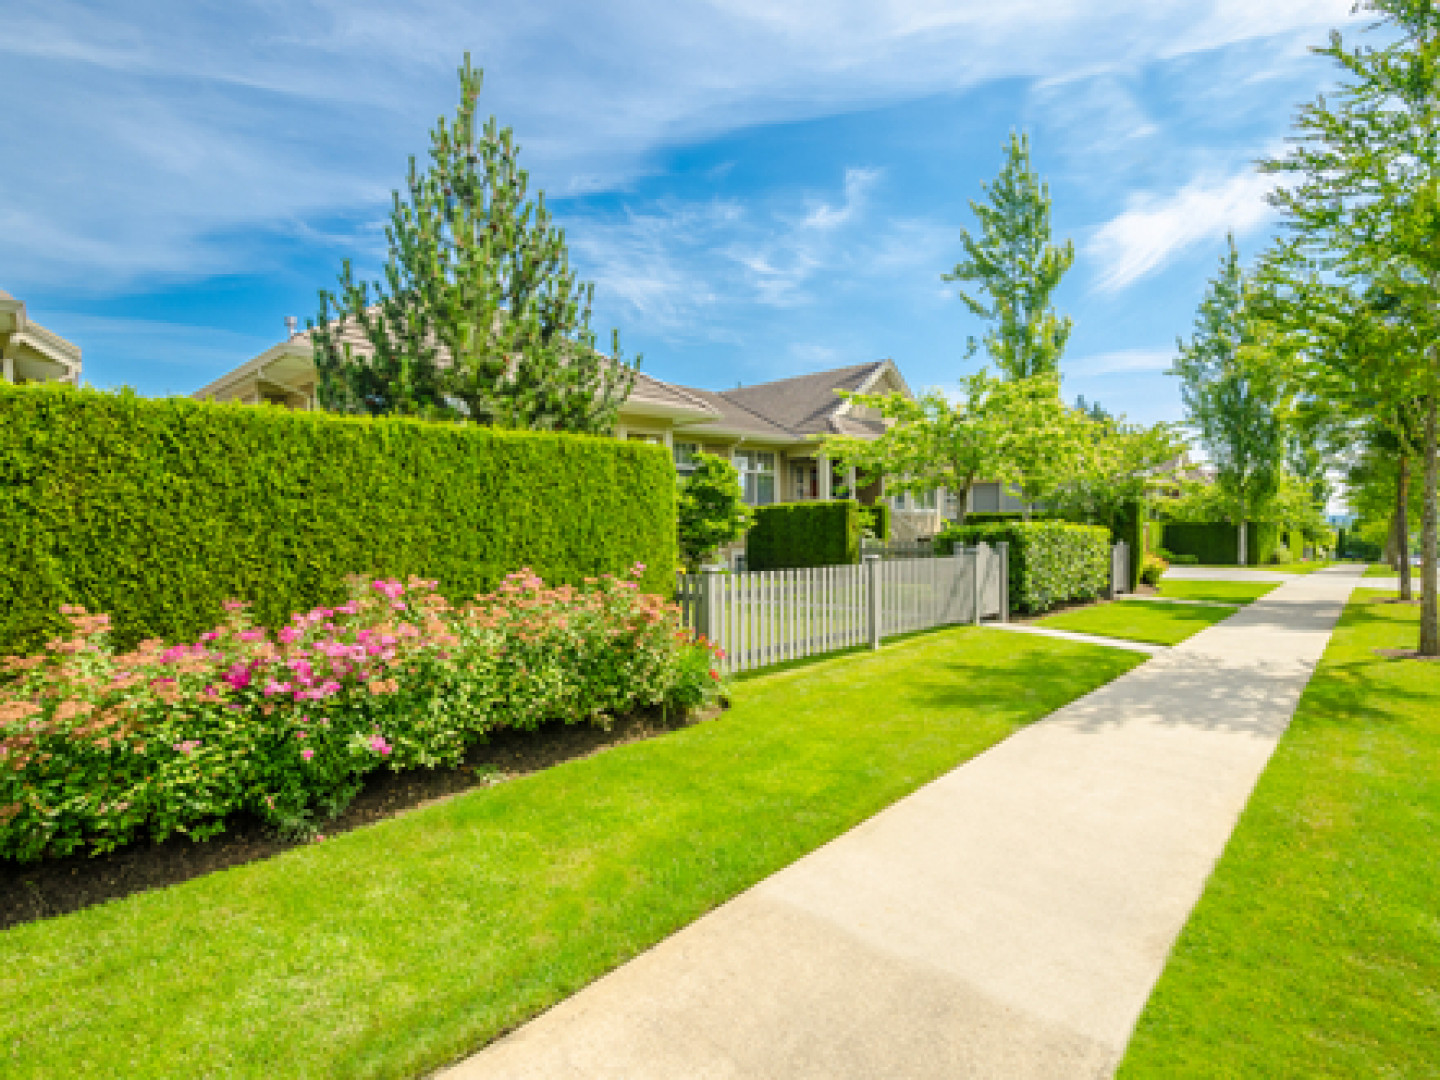 landscaping services in Bethany and Woodbridge, CT